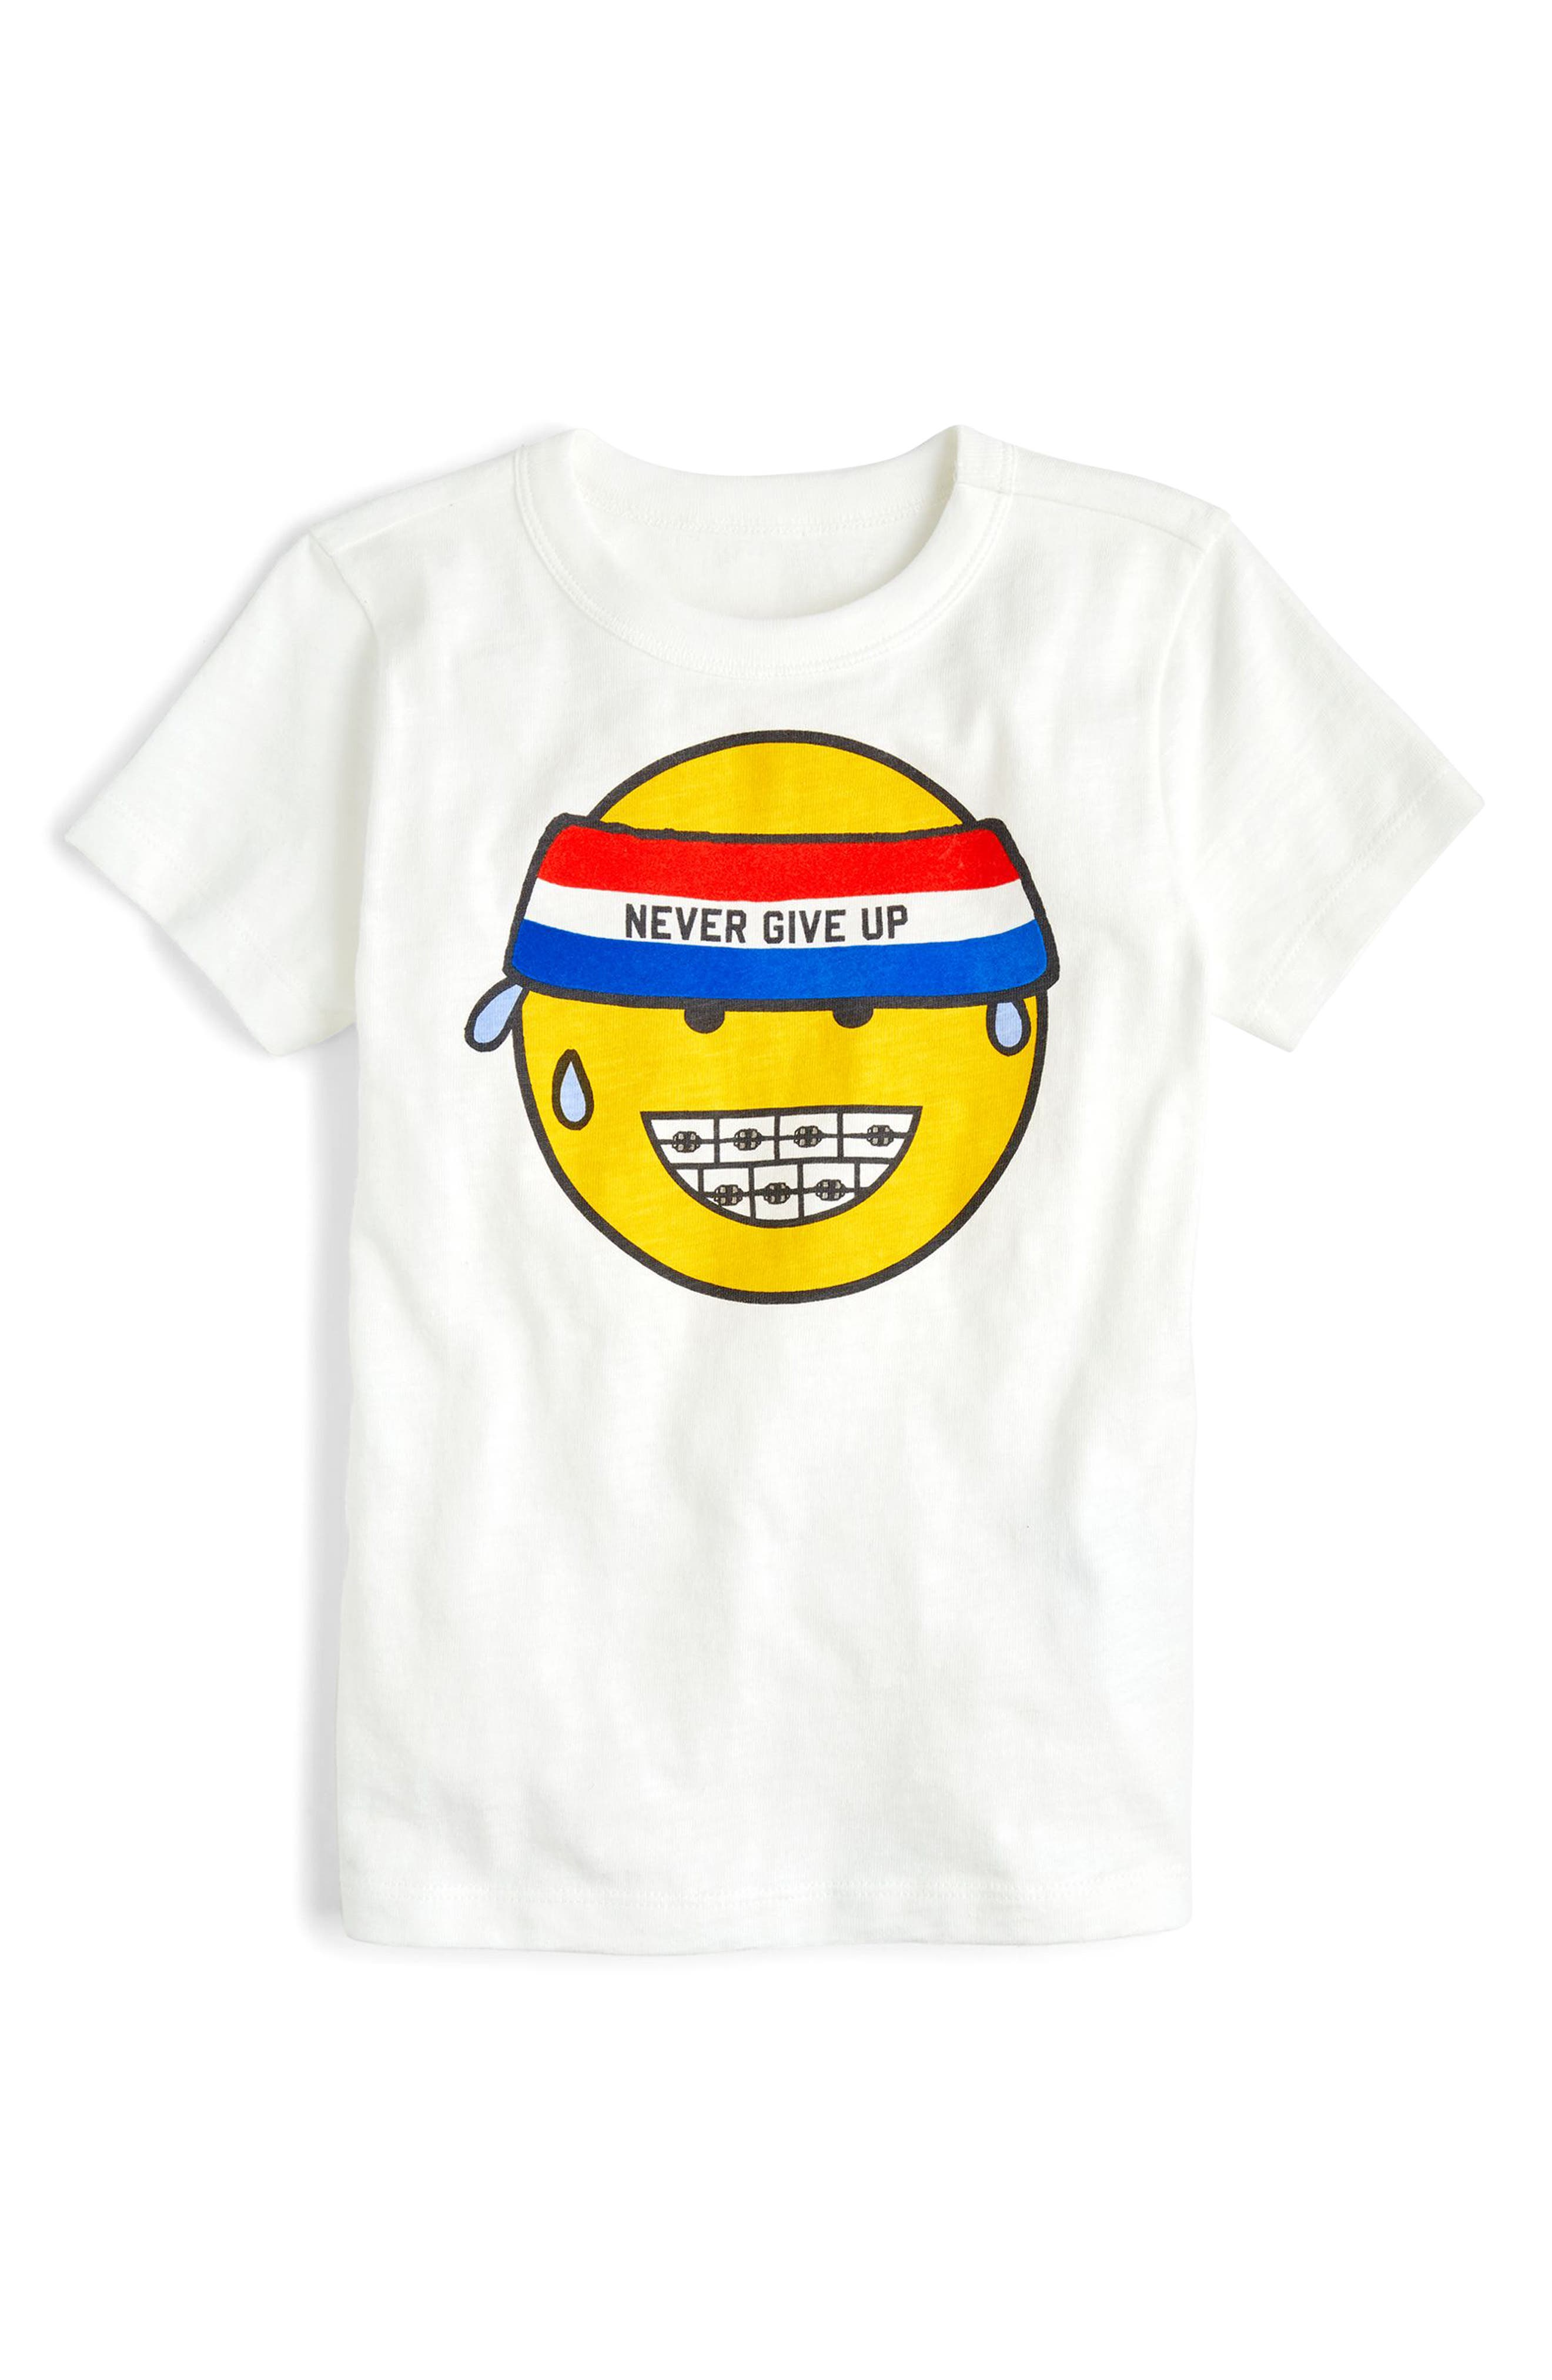 crewcuts by J.Crew Never Give Up Graphic T-Shirt (Toddler Boys, Little Boys & Big Boys)